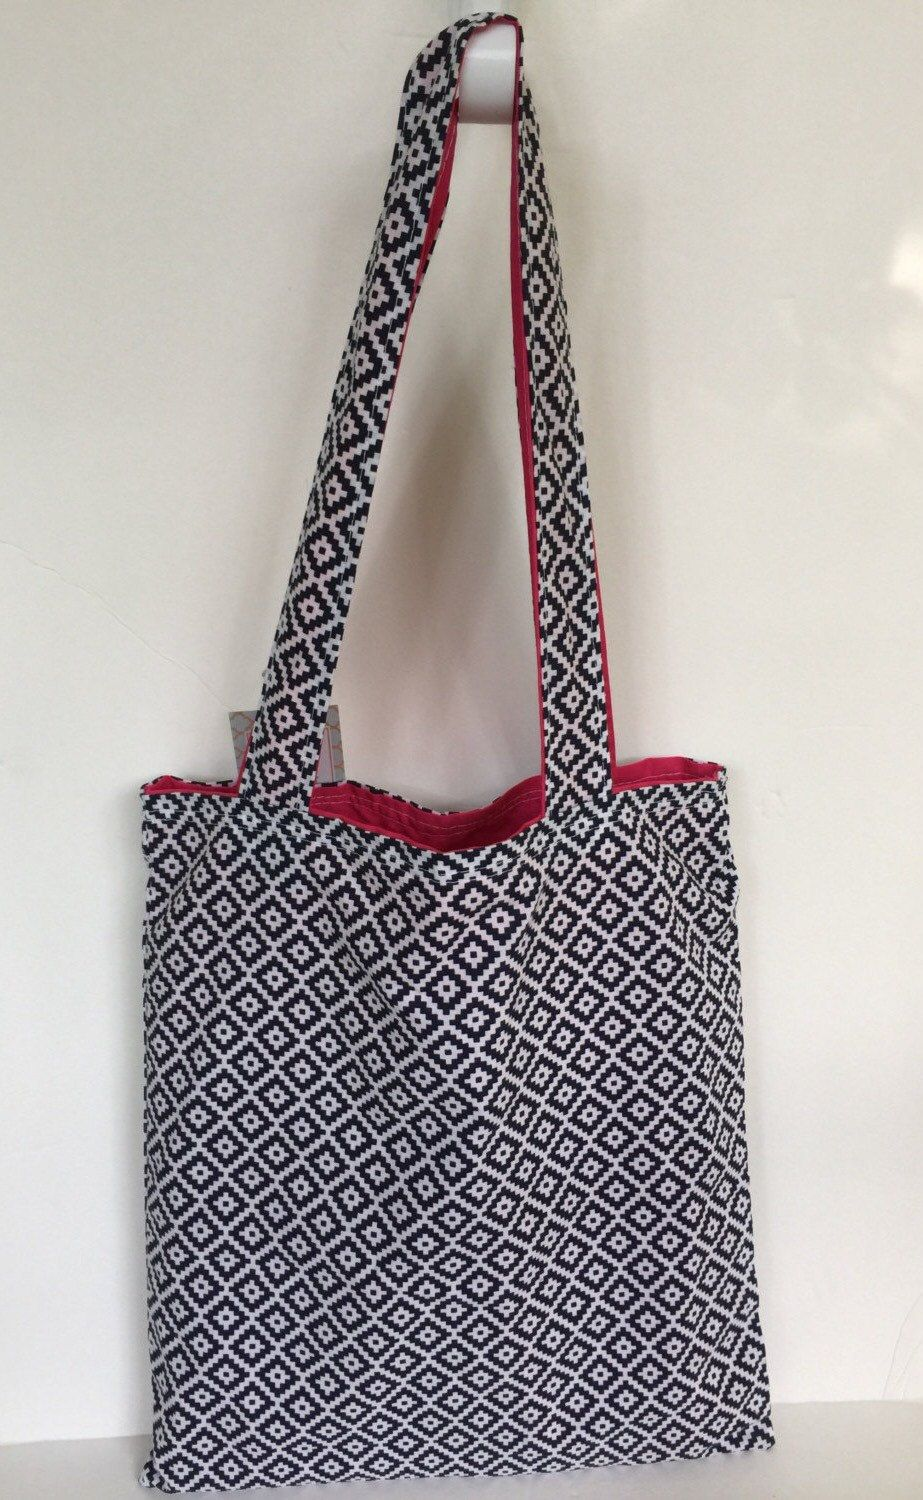 Navy Blue and Pink Market Tote Handmade Navy Southwestern Print Farmer's Market Bag Tote Bag Reversible Tote Bag by AmyReneeNicosia on Etsy